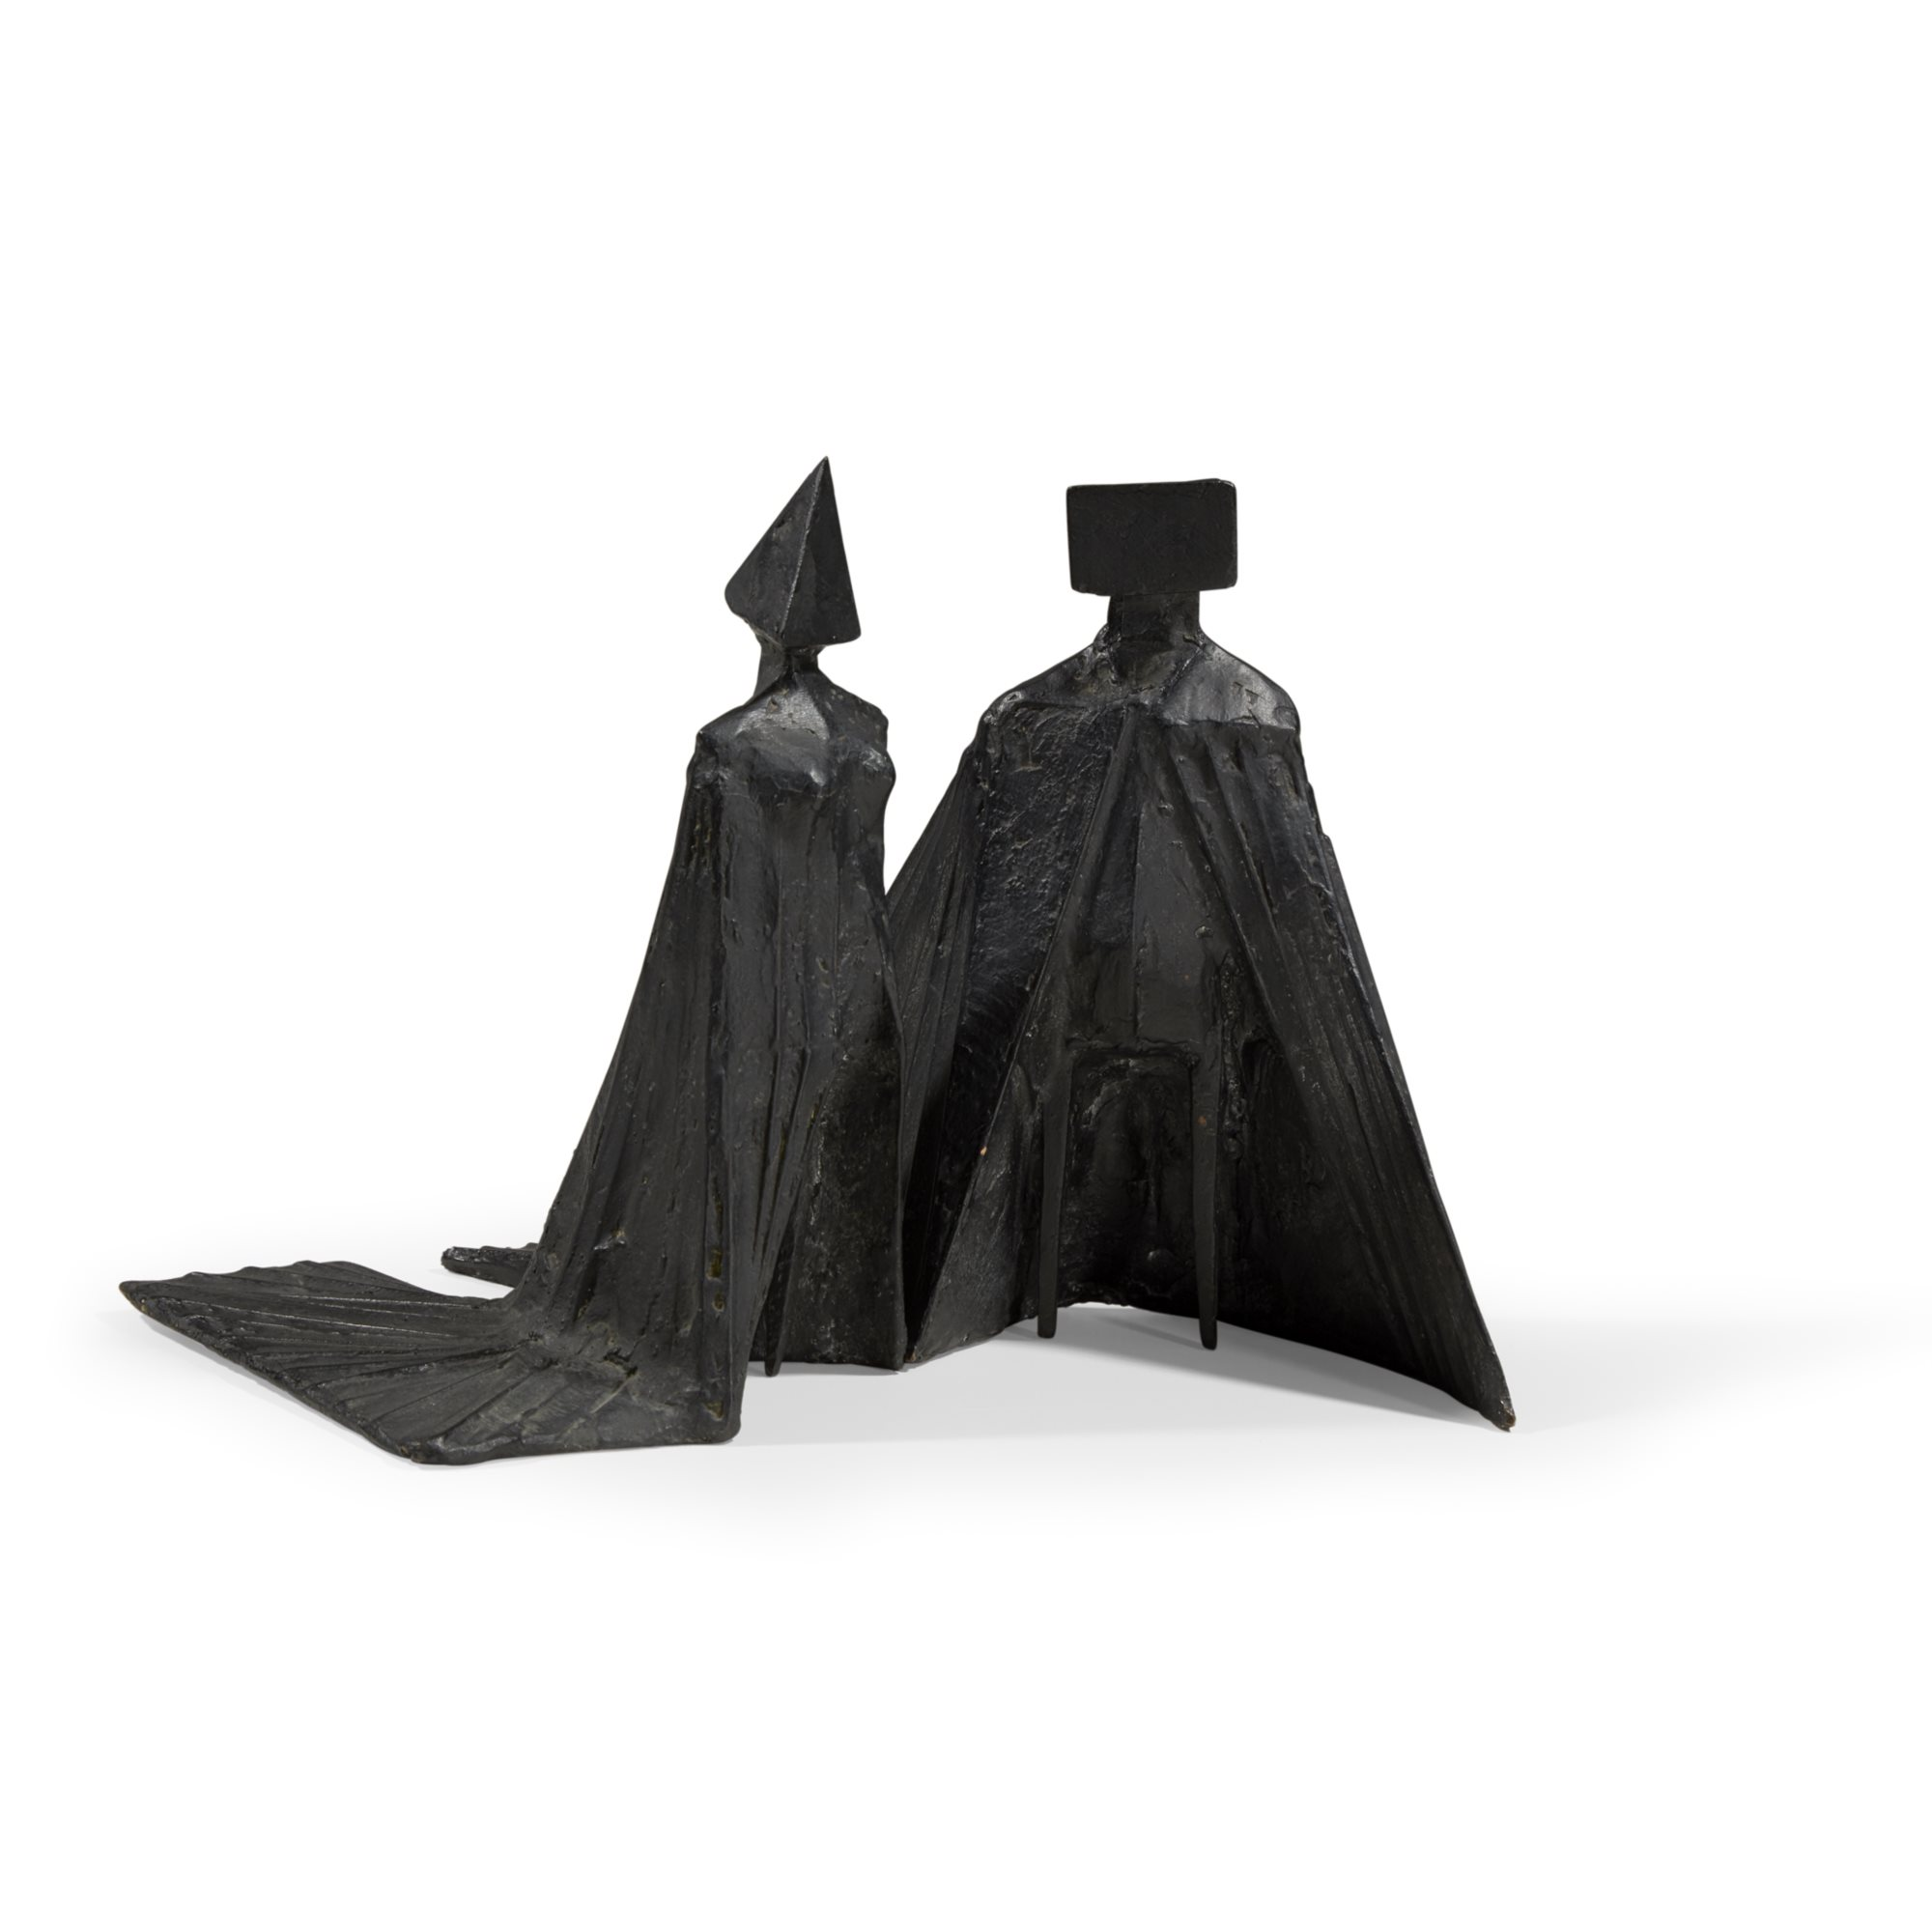 Lot 25 | Lynn Chadwick, Pair of Cloaked Figures, bronze with black patina in two parts, $20,000-30,000